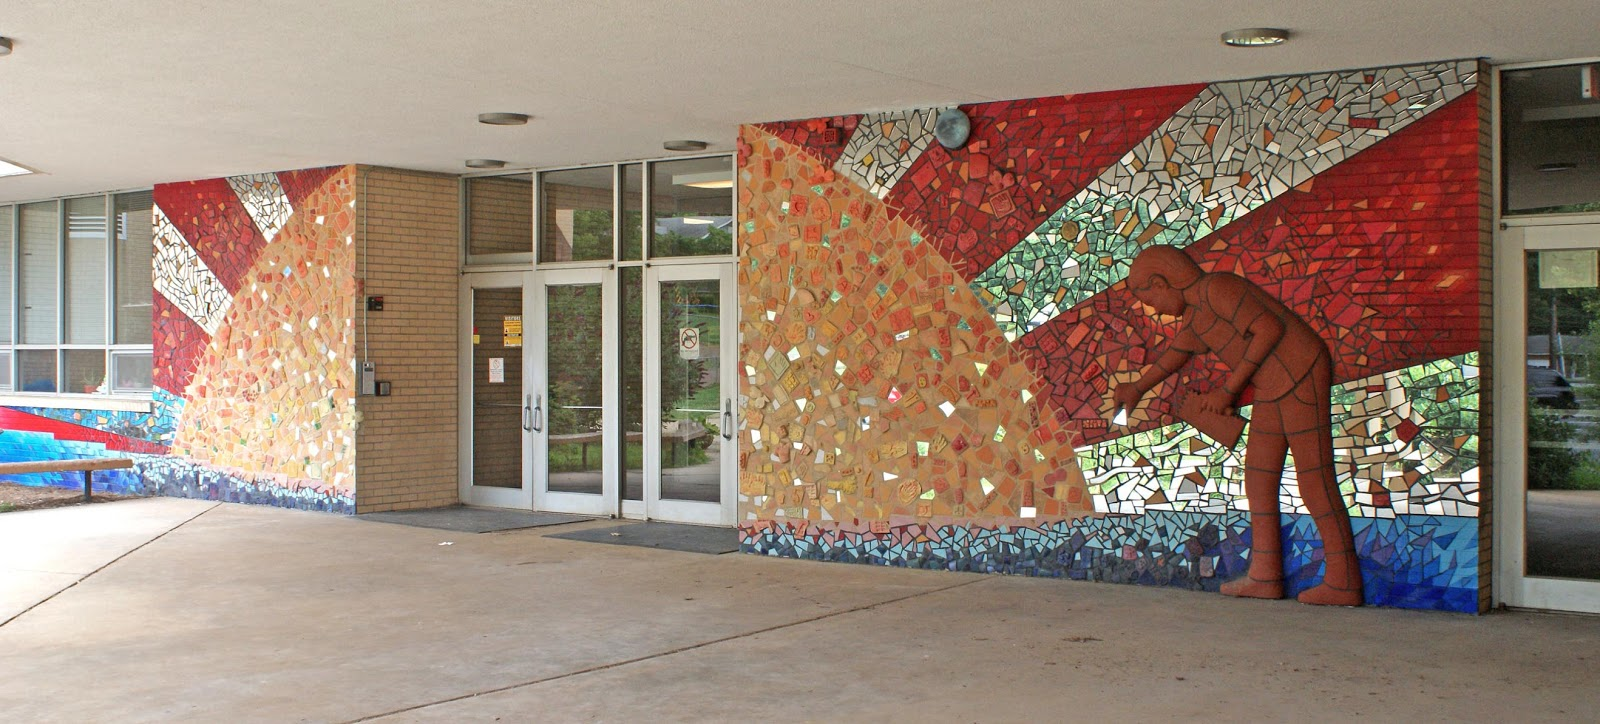 Alex irvine ceramics hall fletcher elementary school mural for Asheville mural project